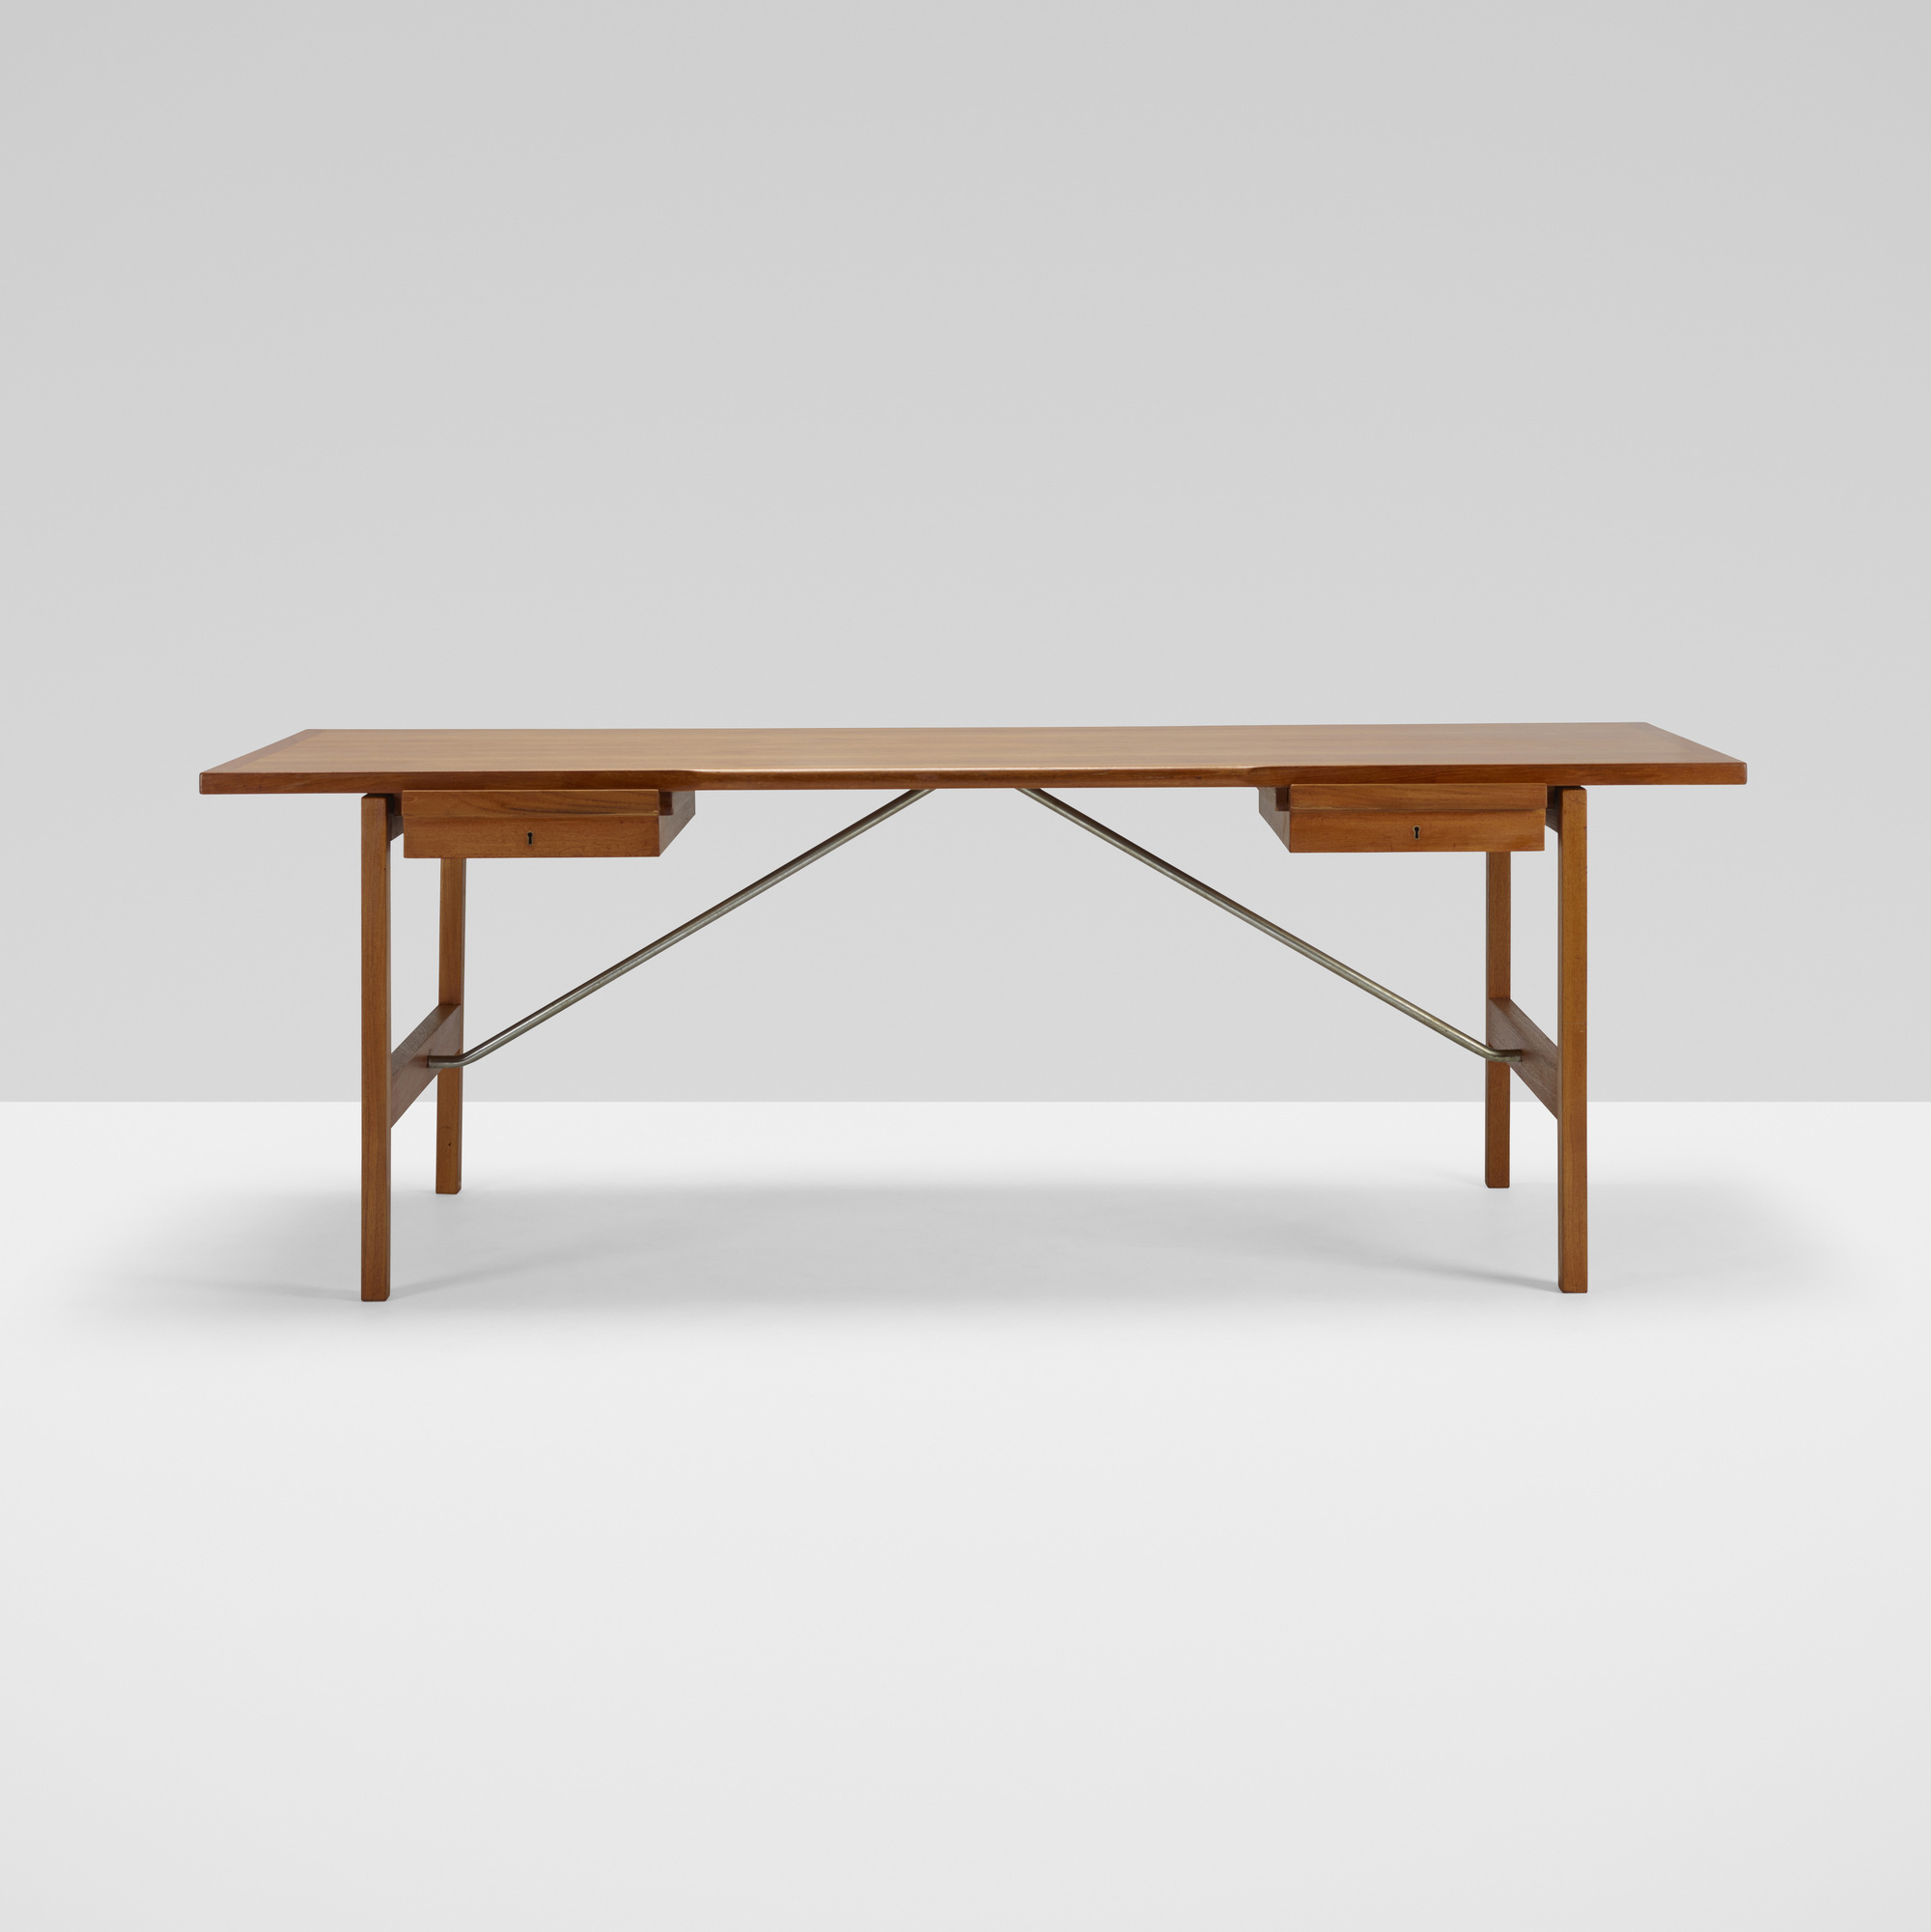 379 Hans J Wegner Desk Model At325 A 2 Of 3